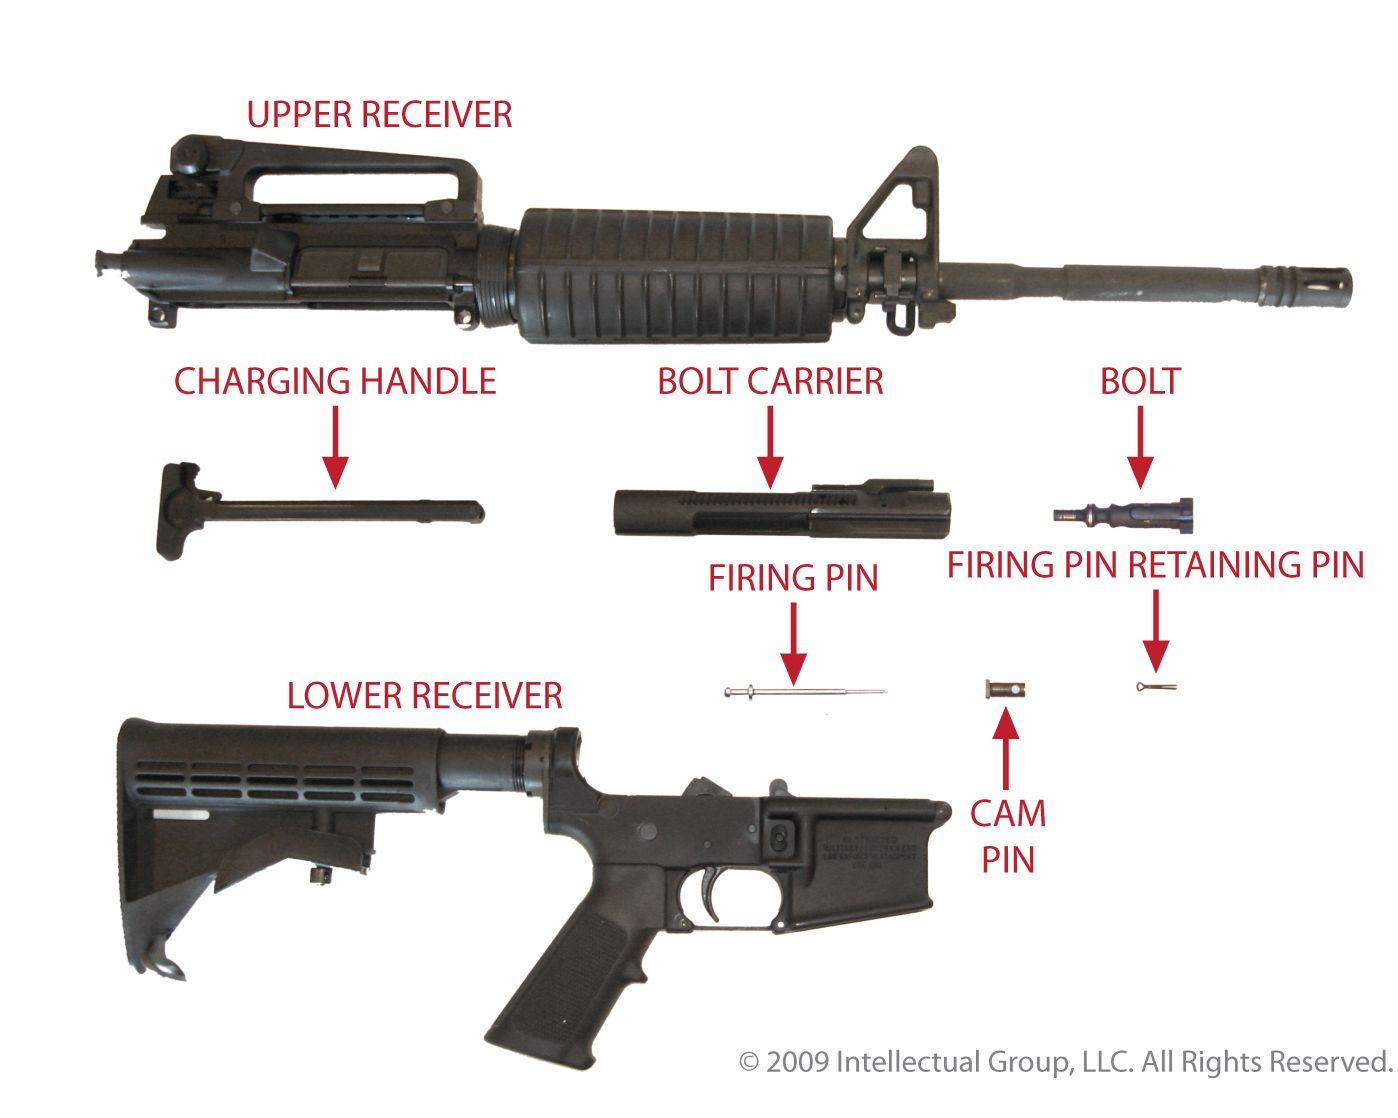 M16 Upper Receiver Assembly Diagram Switch With Pilot Light Wiring Ar15 Basic Rifle Components Geekery Guns